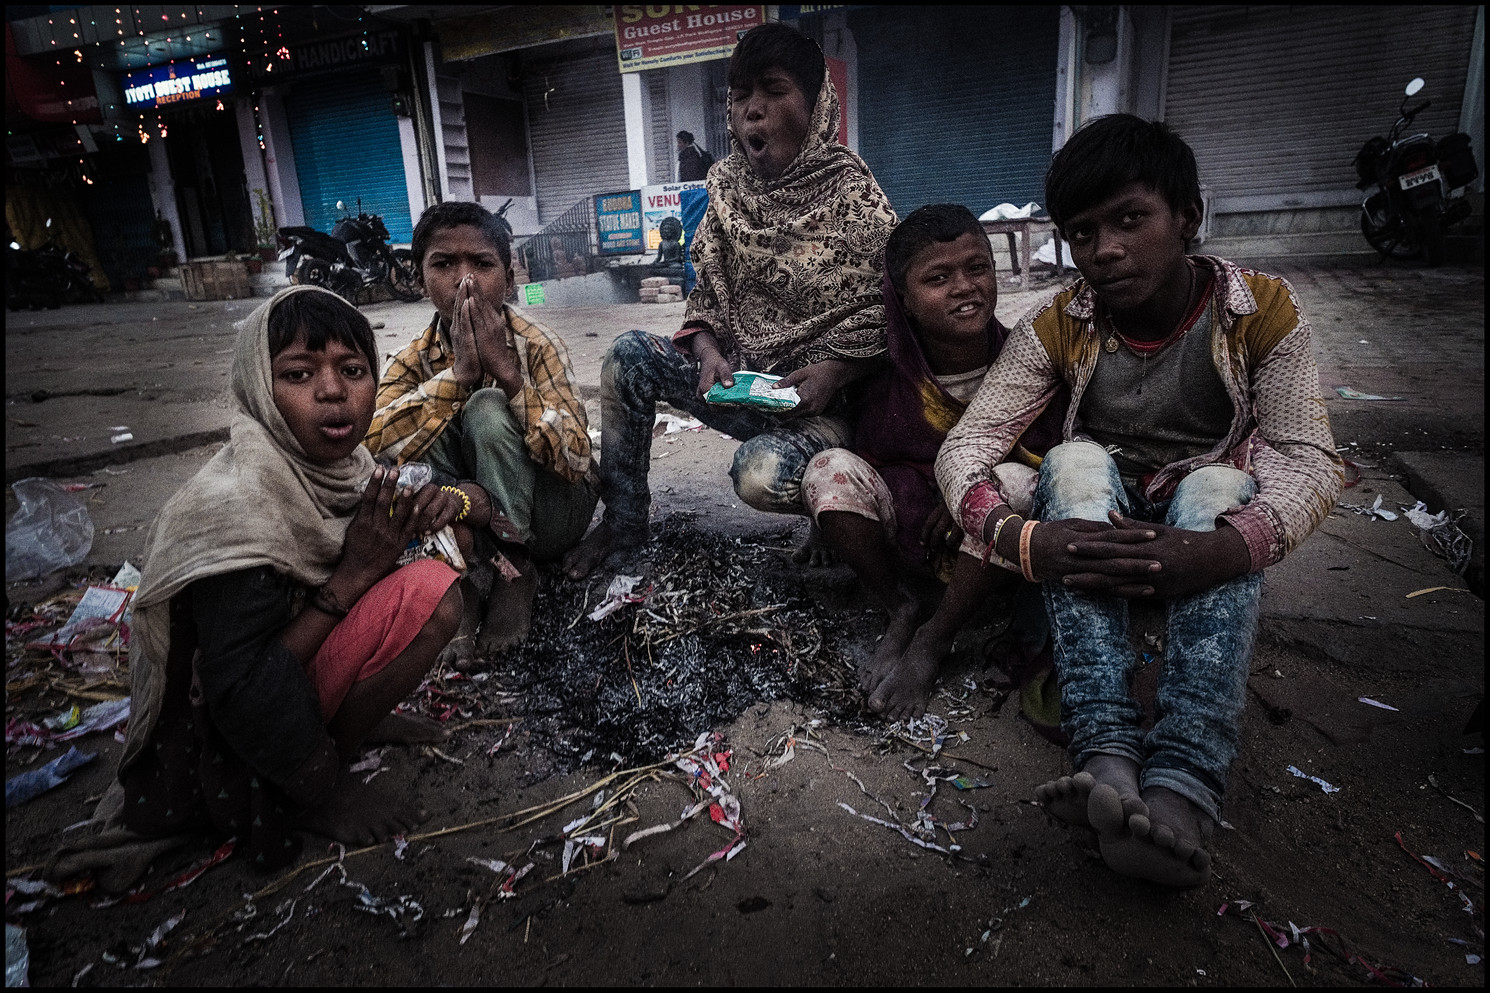 Street Kids Keeping Warm Before Dawn, Bodhgaya, India  India is nothing if not a paradox. Bodhgaya, a UNESCO site renown because it is where the Buddha purportedly attained Enlightenment, is visited by tens of thousands each day. But there is crushing poverty. So widespread, the issues of class, geography, race so complex, the mind can become numb after days and weeks there. To counter this, when on assignment or with personal work, I photograph people just before daybreak and at dusk. Then, it seems a veil dissolves. Cultural differences dissolve. The heart, mine and theirs, is less protected. Each day I'd awake an hour or two before dawn to shoot. Most mornings, these boys would have collected scraps of cardboard, to make a fire, a modest respite from the bone chilling cold of a north Indian night.